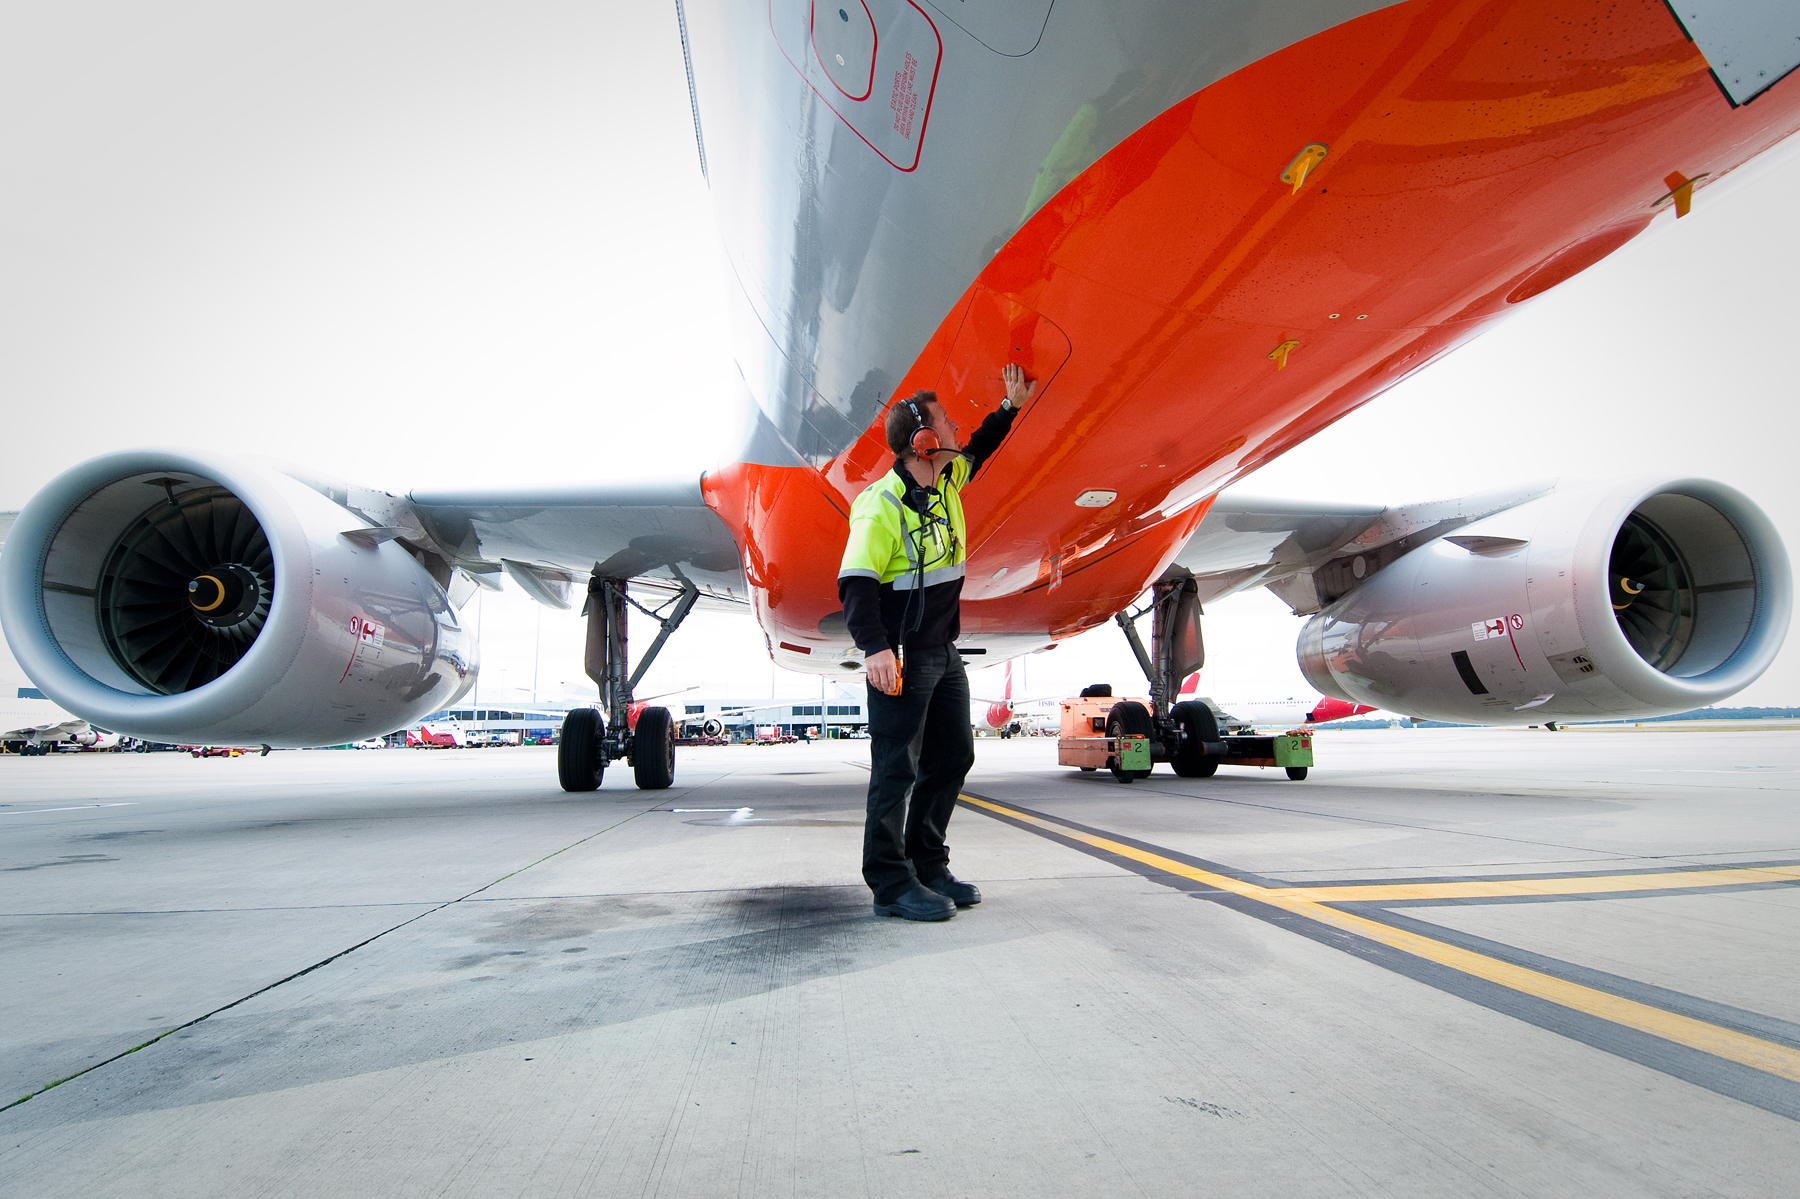 Ground staff directs a Jetstar plane.